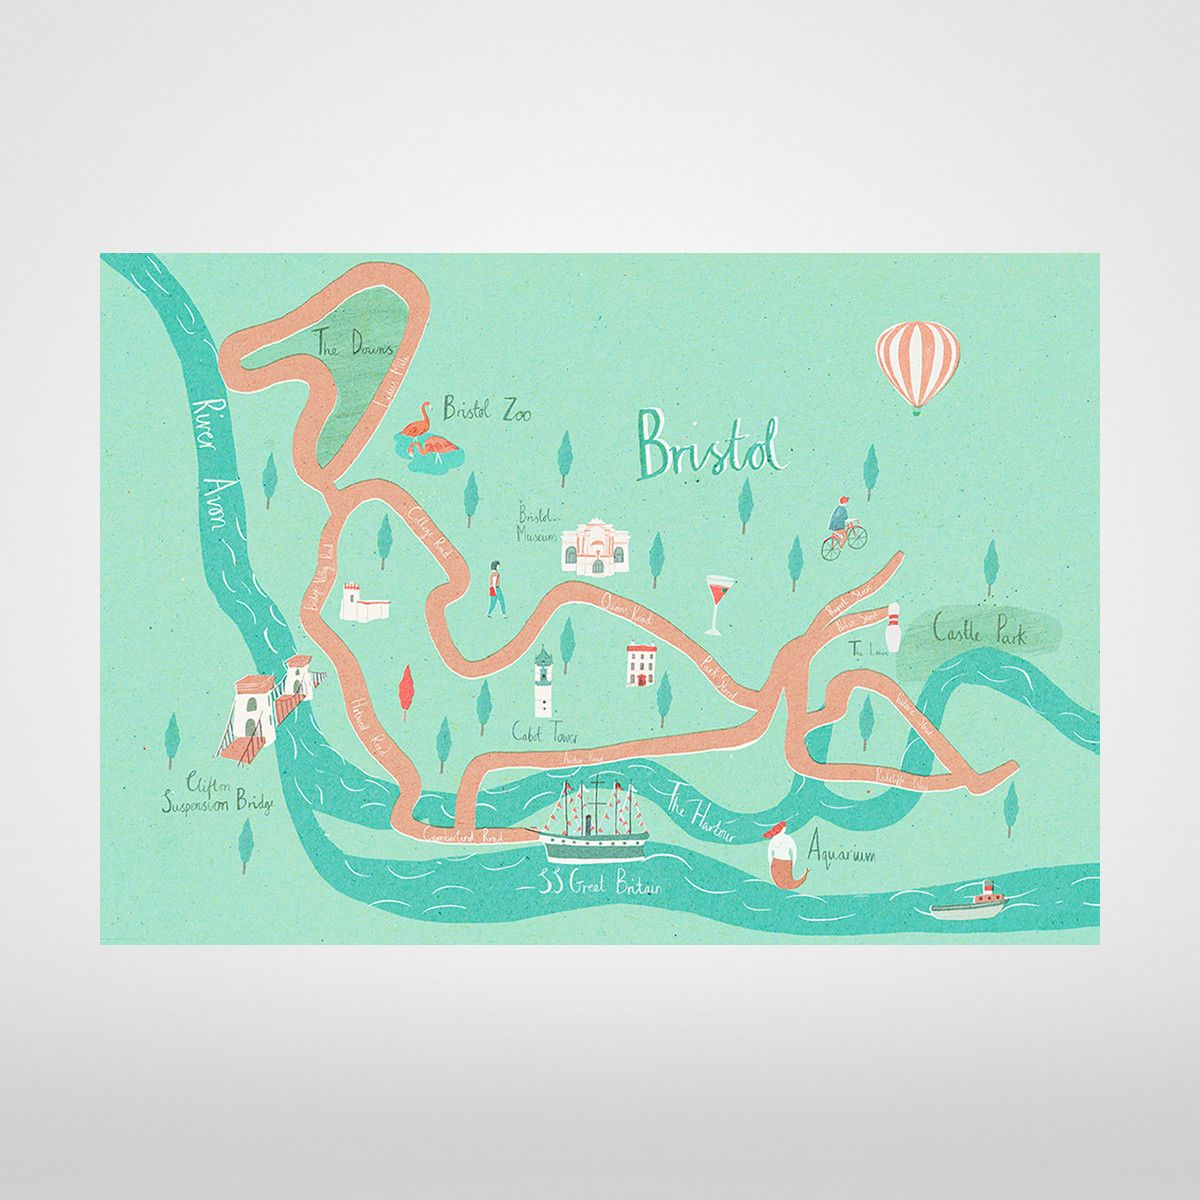 Illustrated Bristol Map Giclée Print by Naomi Wilkinson at The Bristol Shop